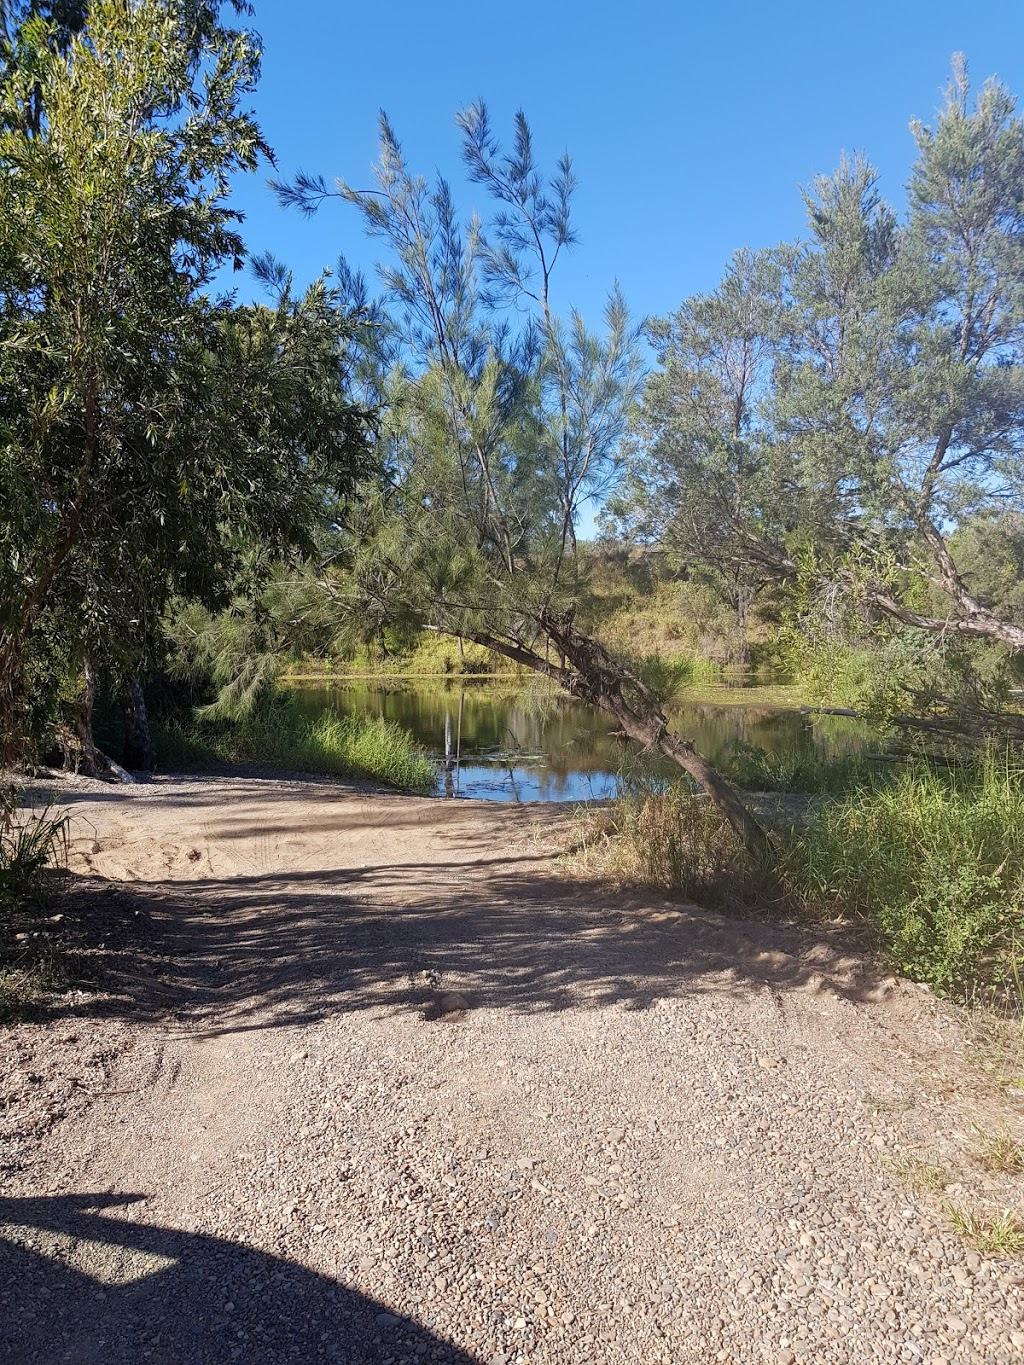 Camp Akuna Pikes Crossing   campground   191 Pikes Crossing Rd, Benaraby QLD 4680, Australia